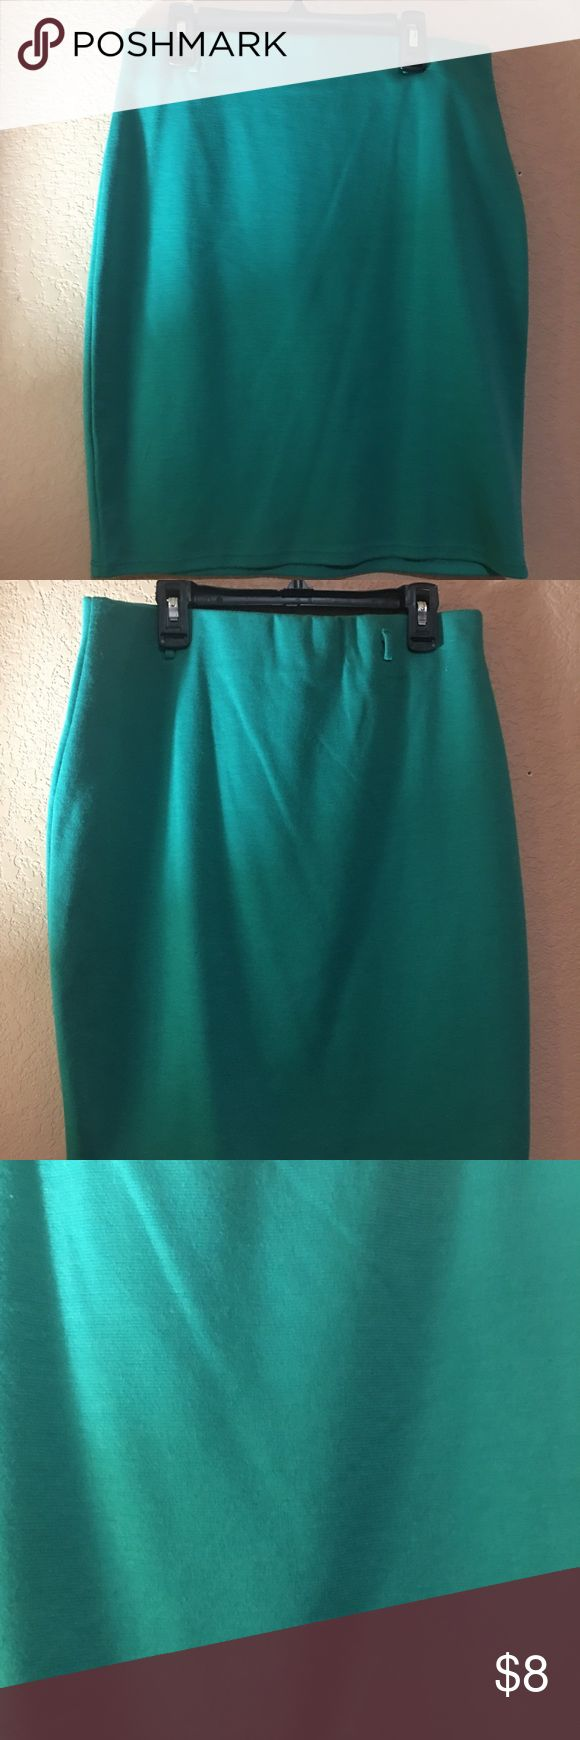 Turquoise skirt Turquoise mini skirt , in great condition no stains or tears but it is missing its belt . Brat Star Skirts Mini